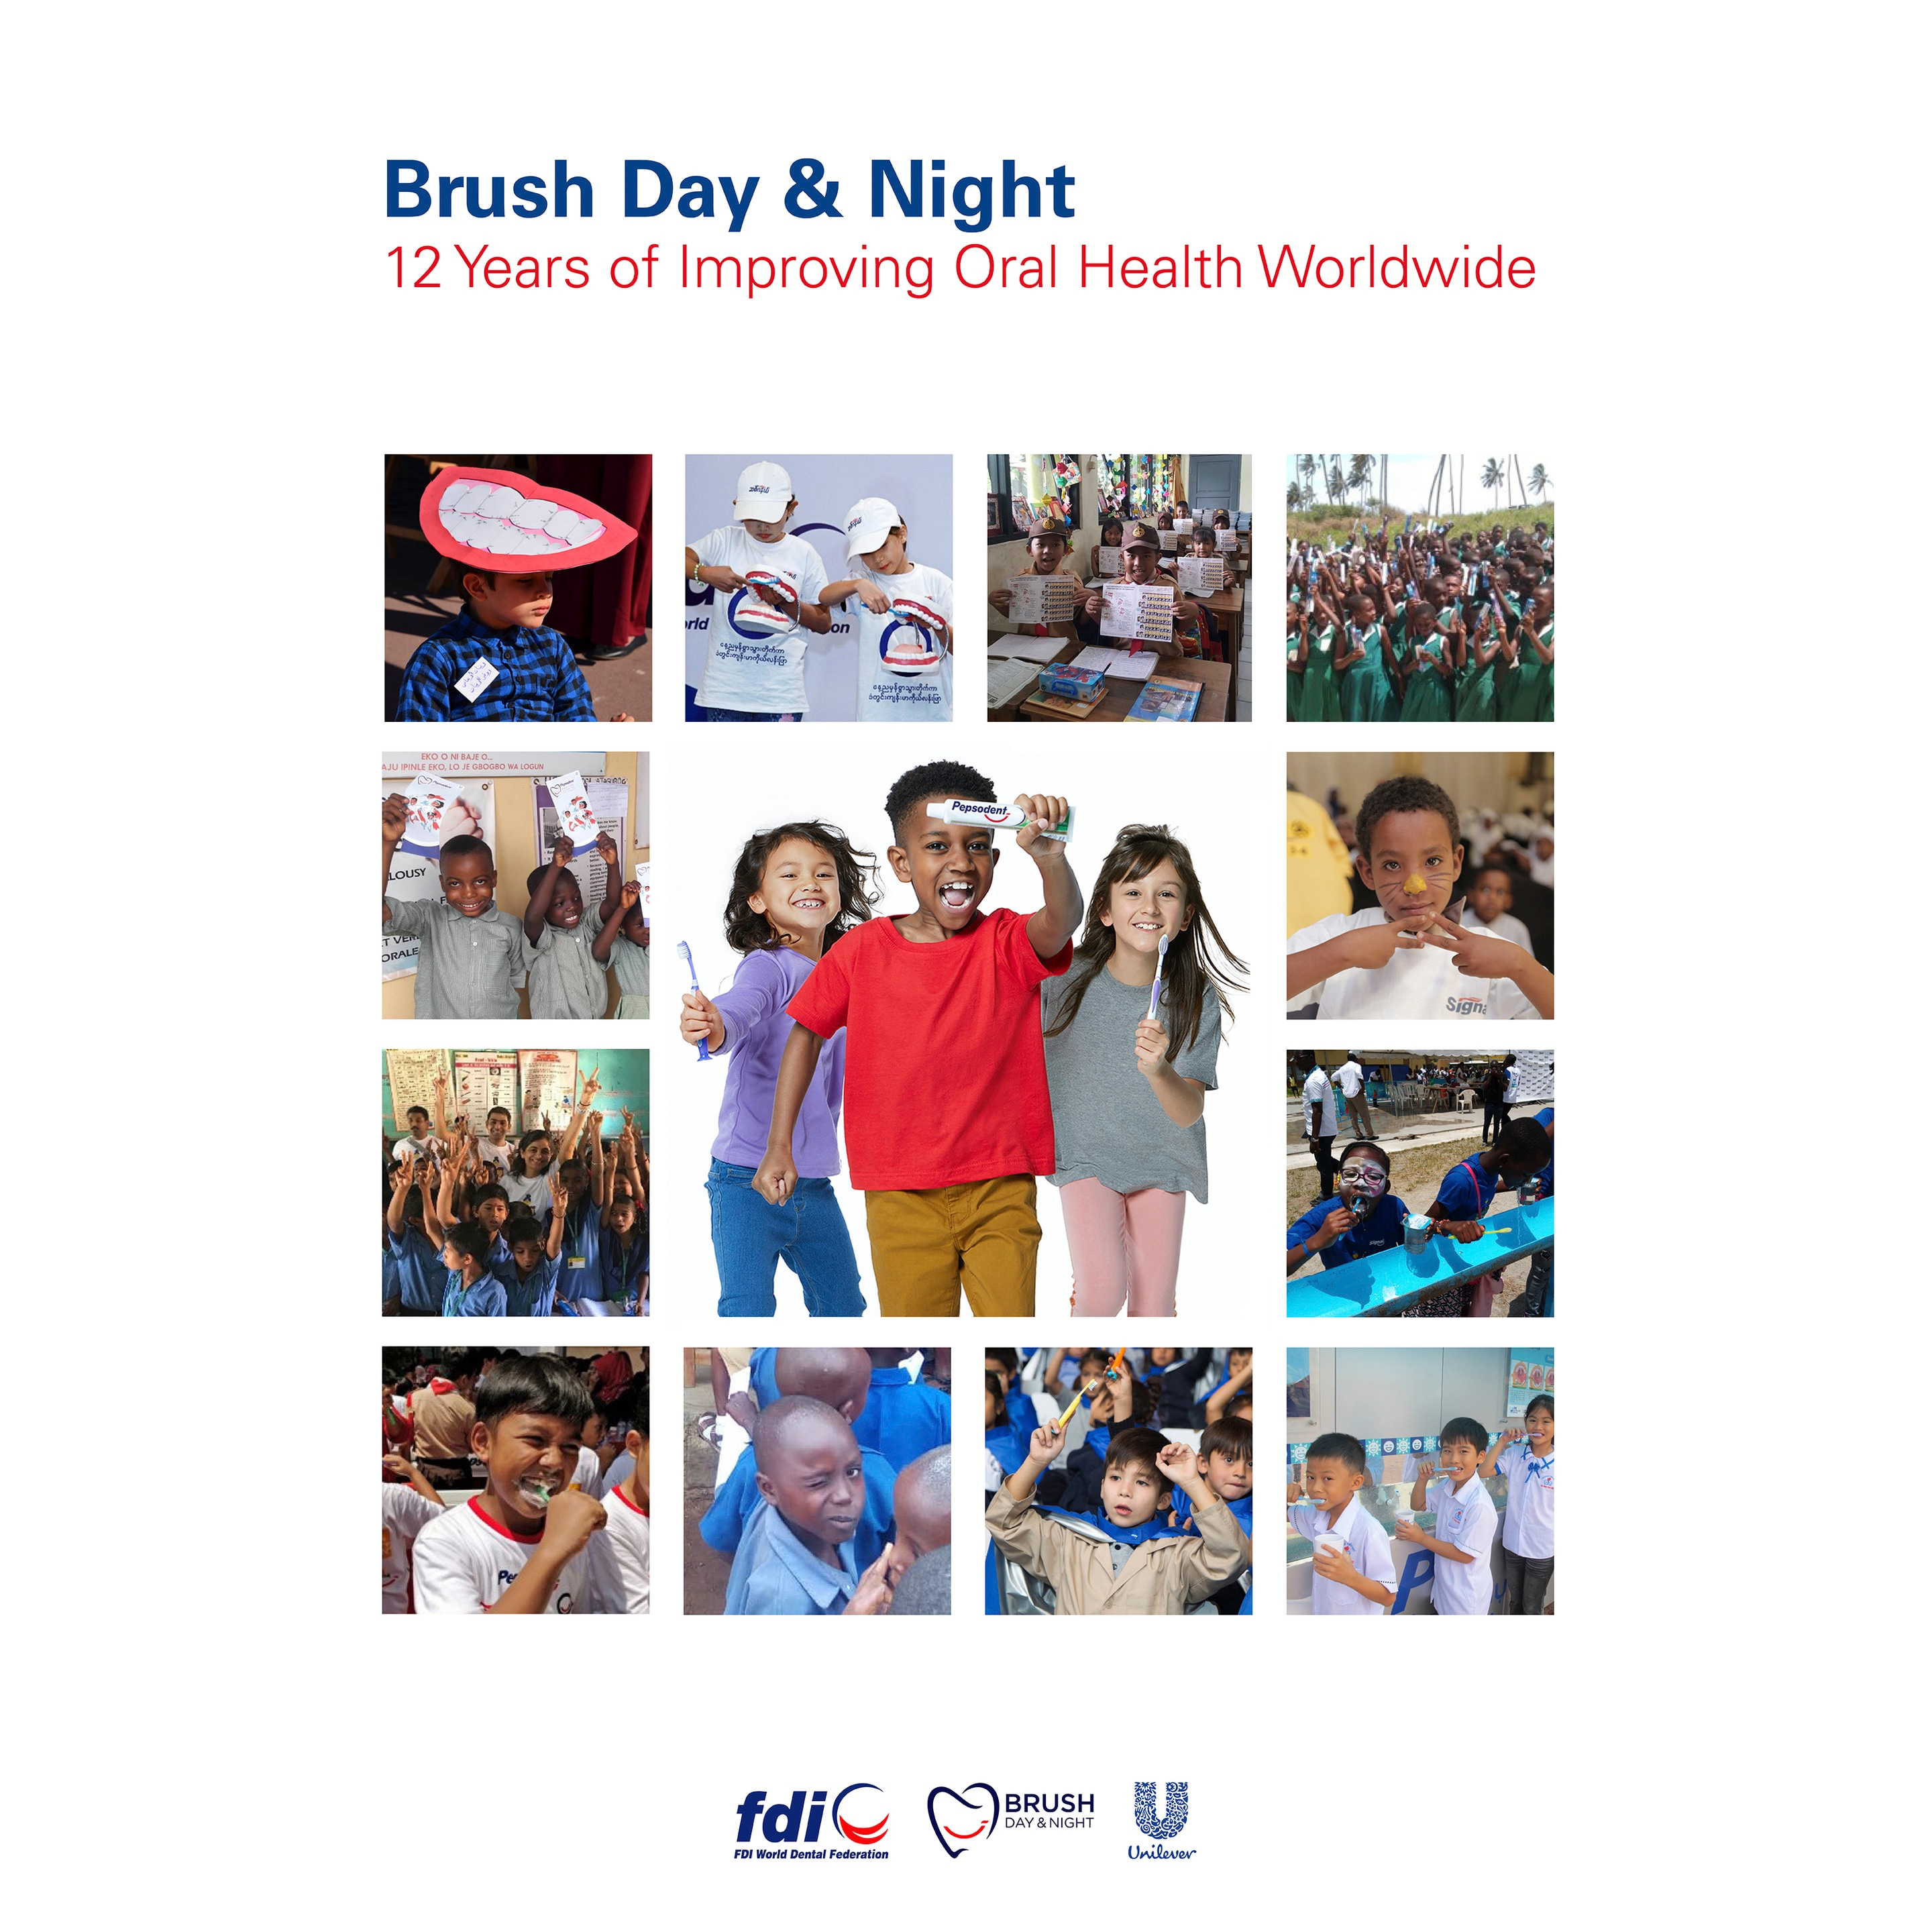 Brush Day & Night Partnership: 12 Years of Improving Oral Health Worldwide. The 21-day programme educates schoolchildren about good oral health and the correct toothbrushing technique.